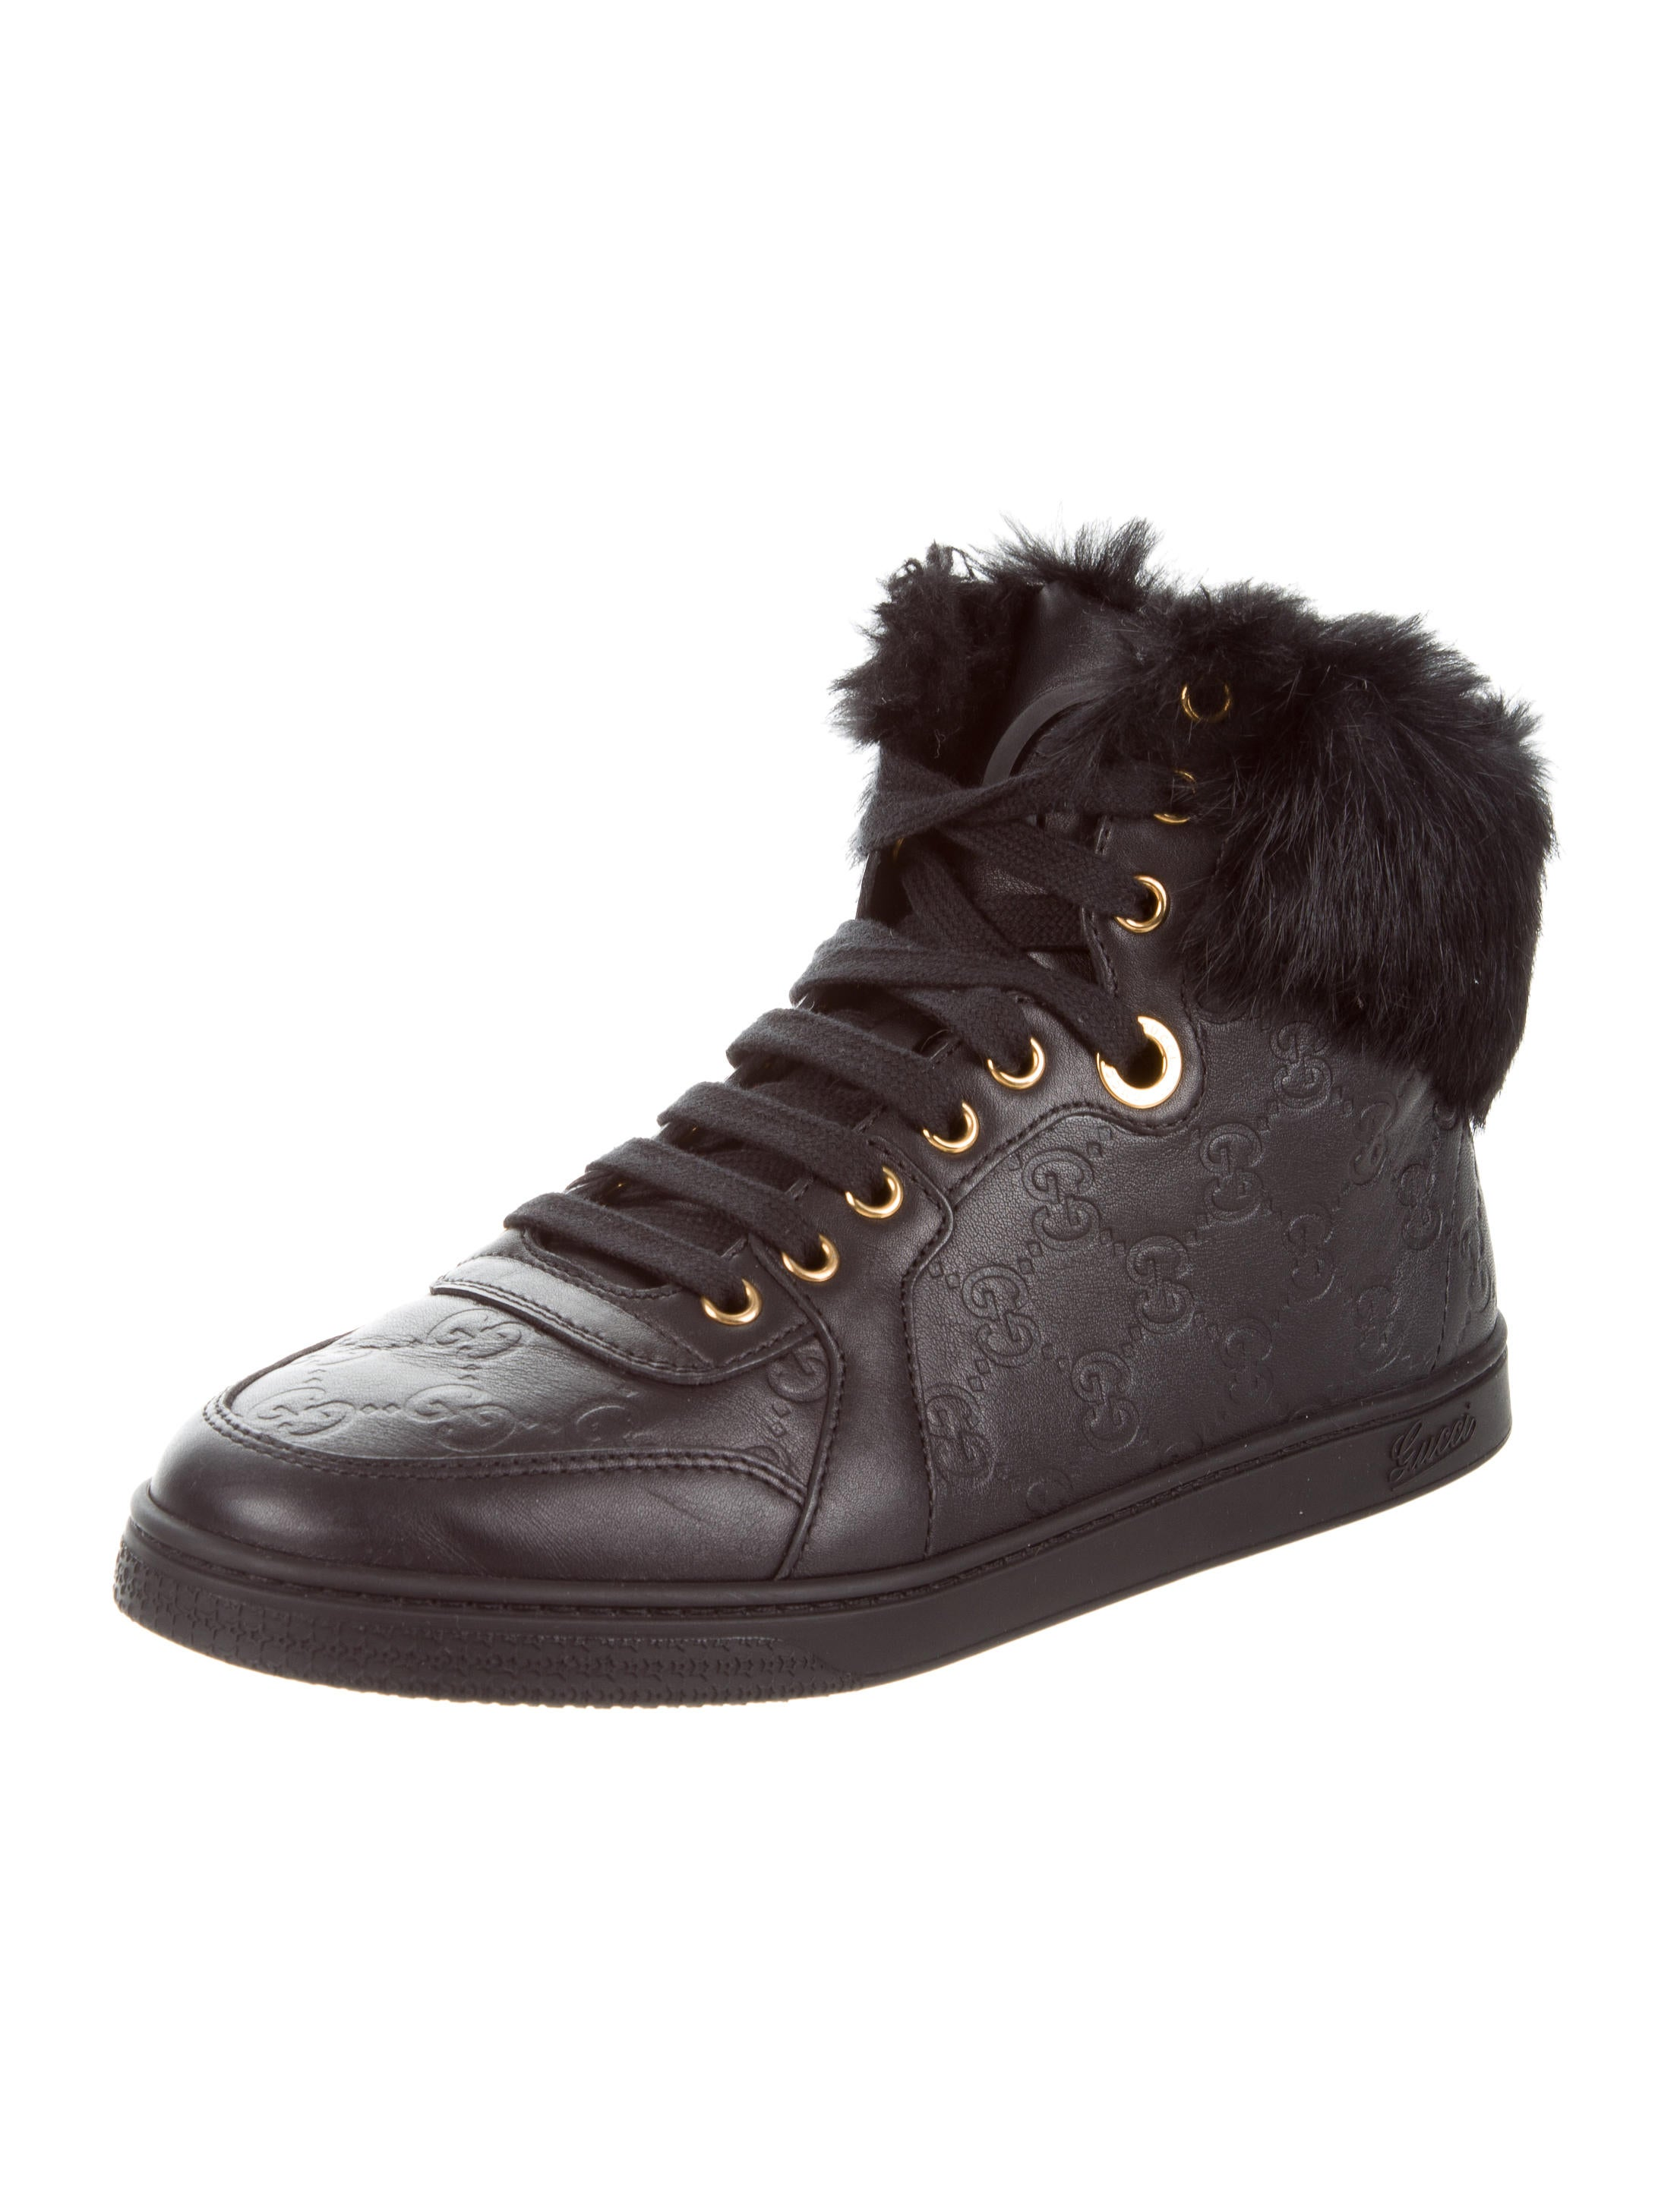 84238126aa2 Gucci Fur-Trimmed Guccissima Sneakers - Shoes - GUC180928